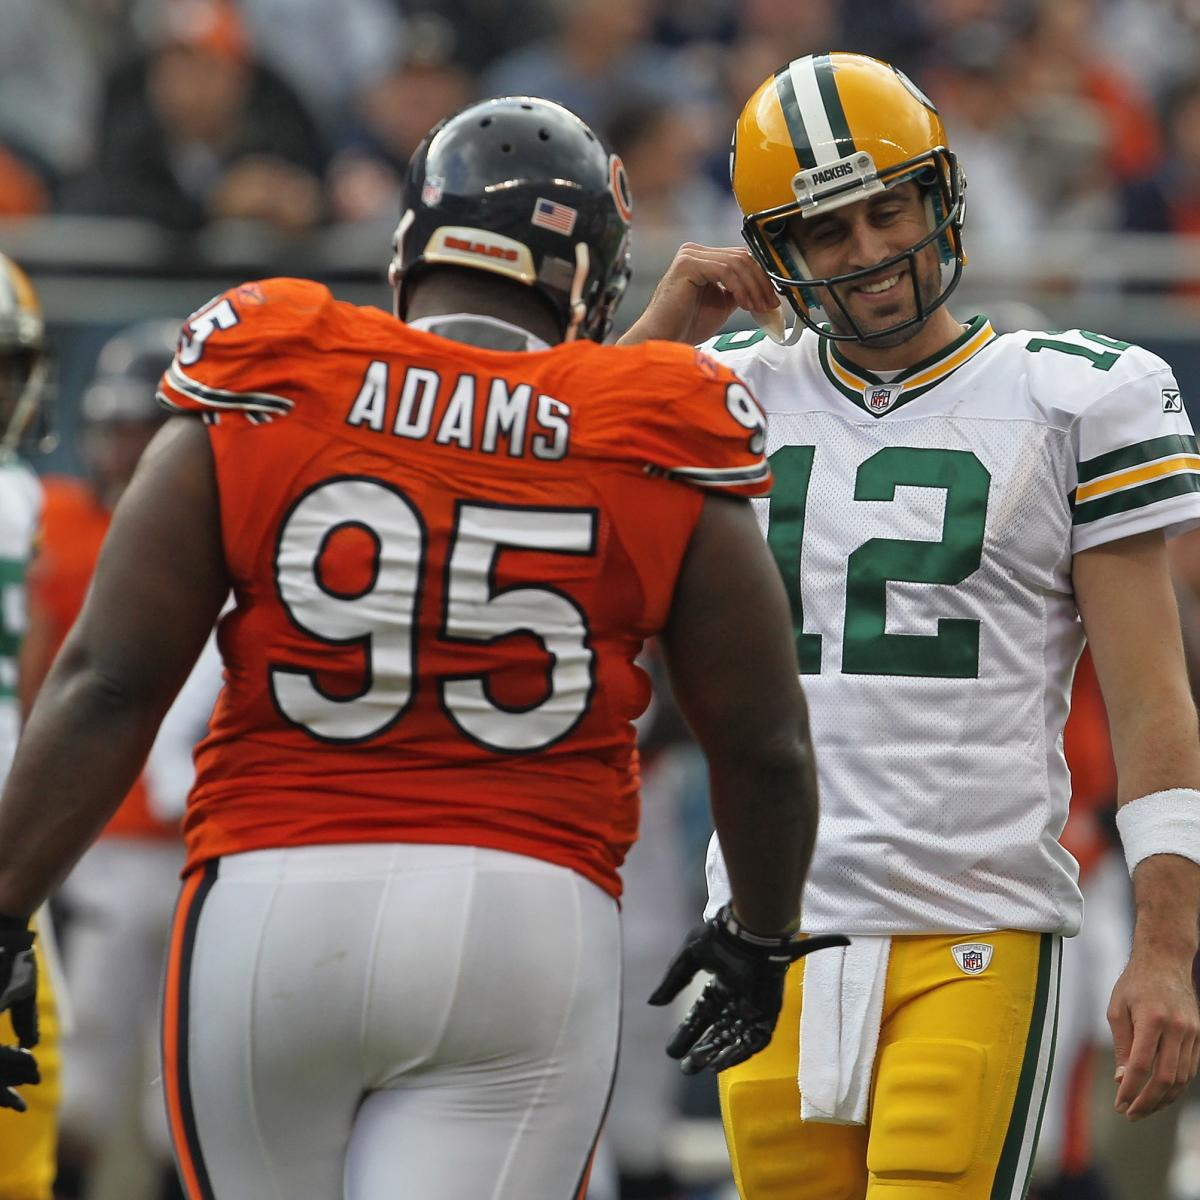 Chicago Bears DT Anthony Adams Wins at Retiring with a Hilarious